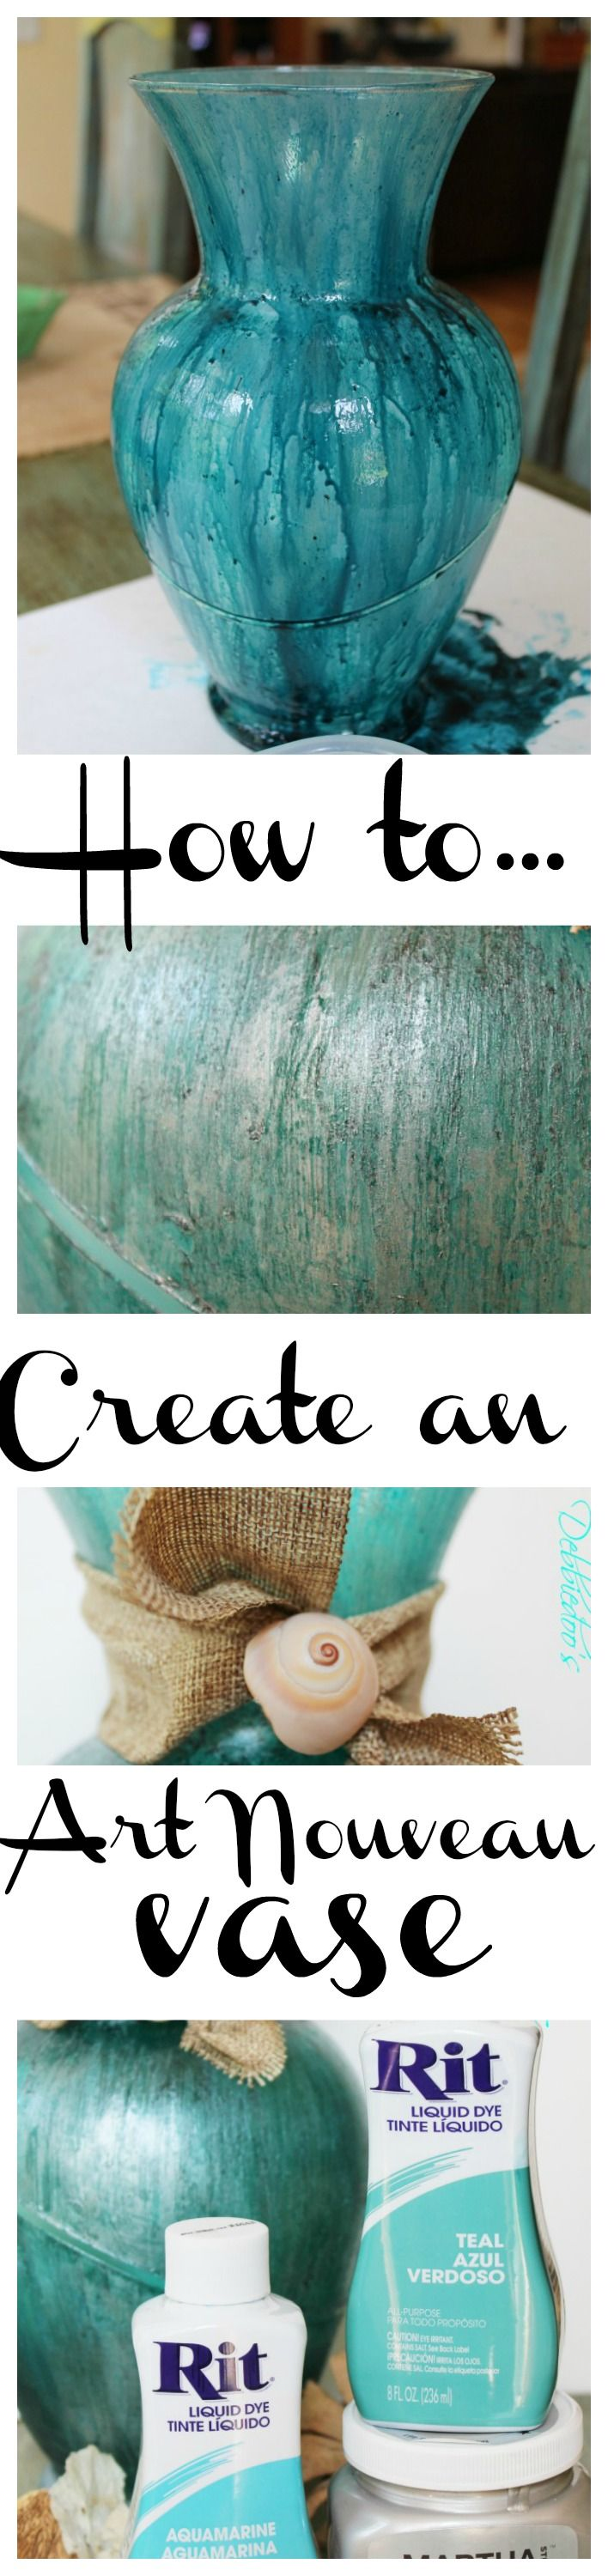 How to create your own one of a kind high end looking vase for just a few dollars. #Modpodge, #ritdye, doo-over. Art Nouveau, Coastal style for this one.